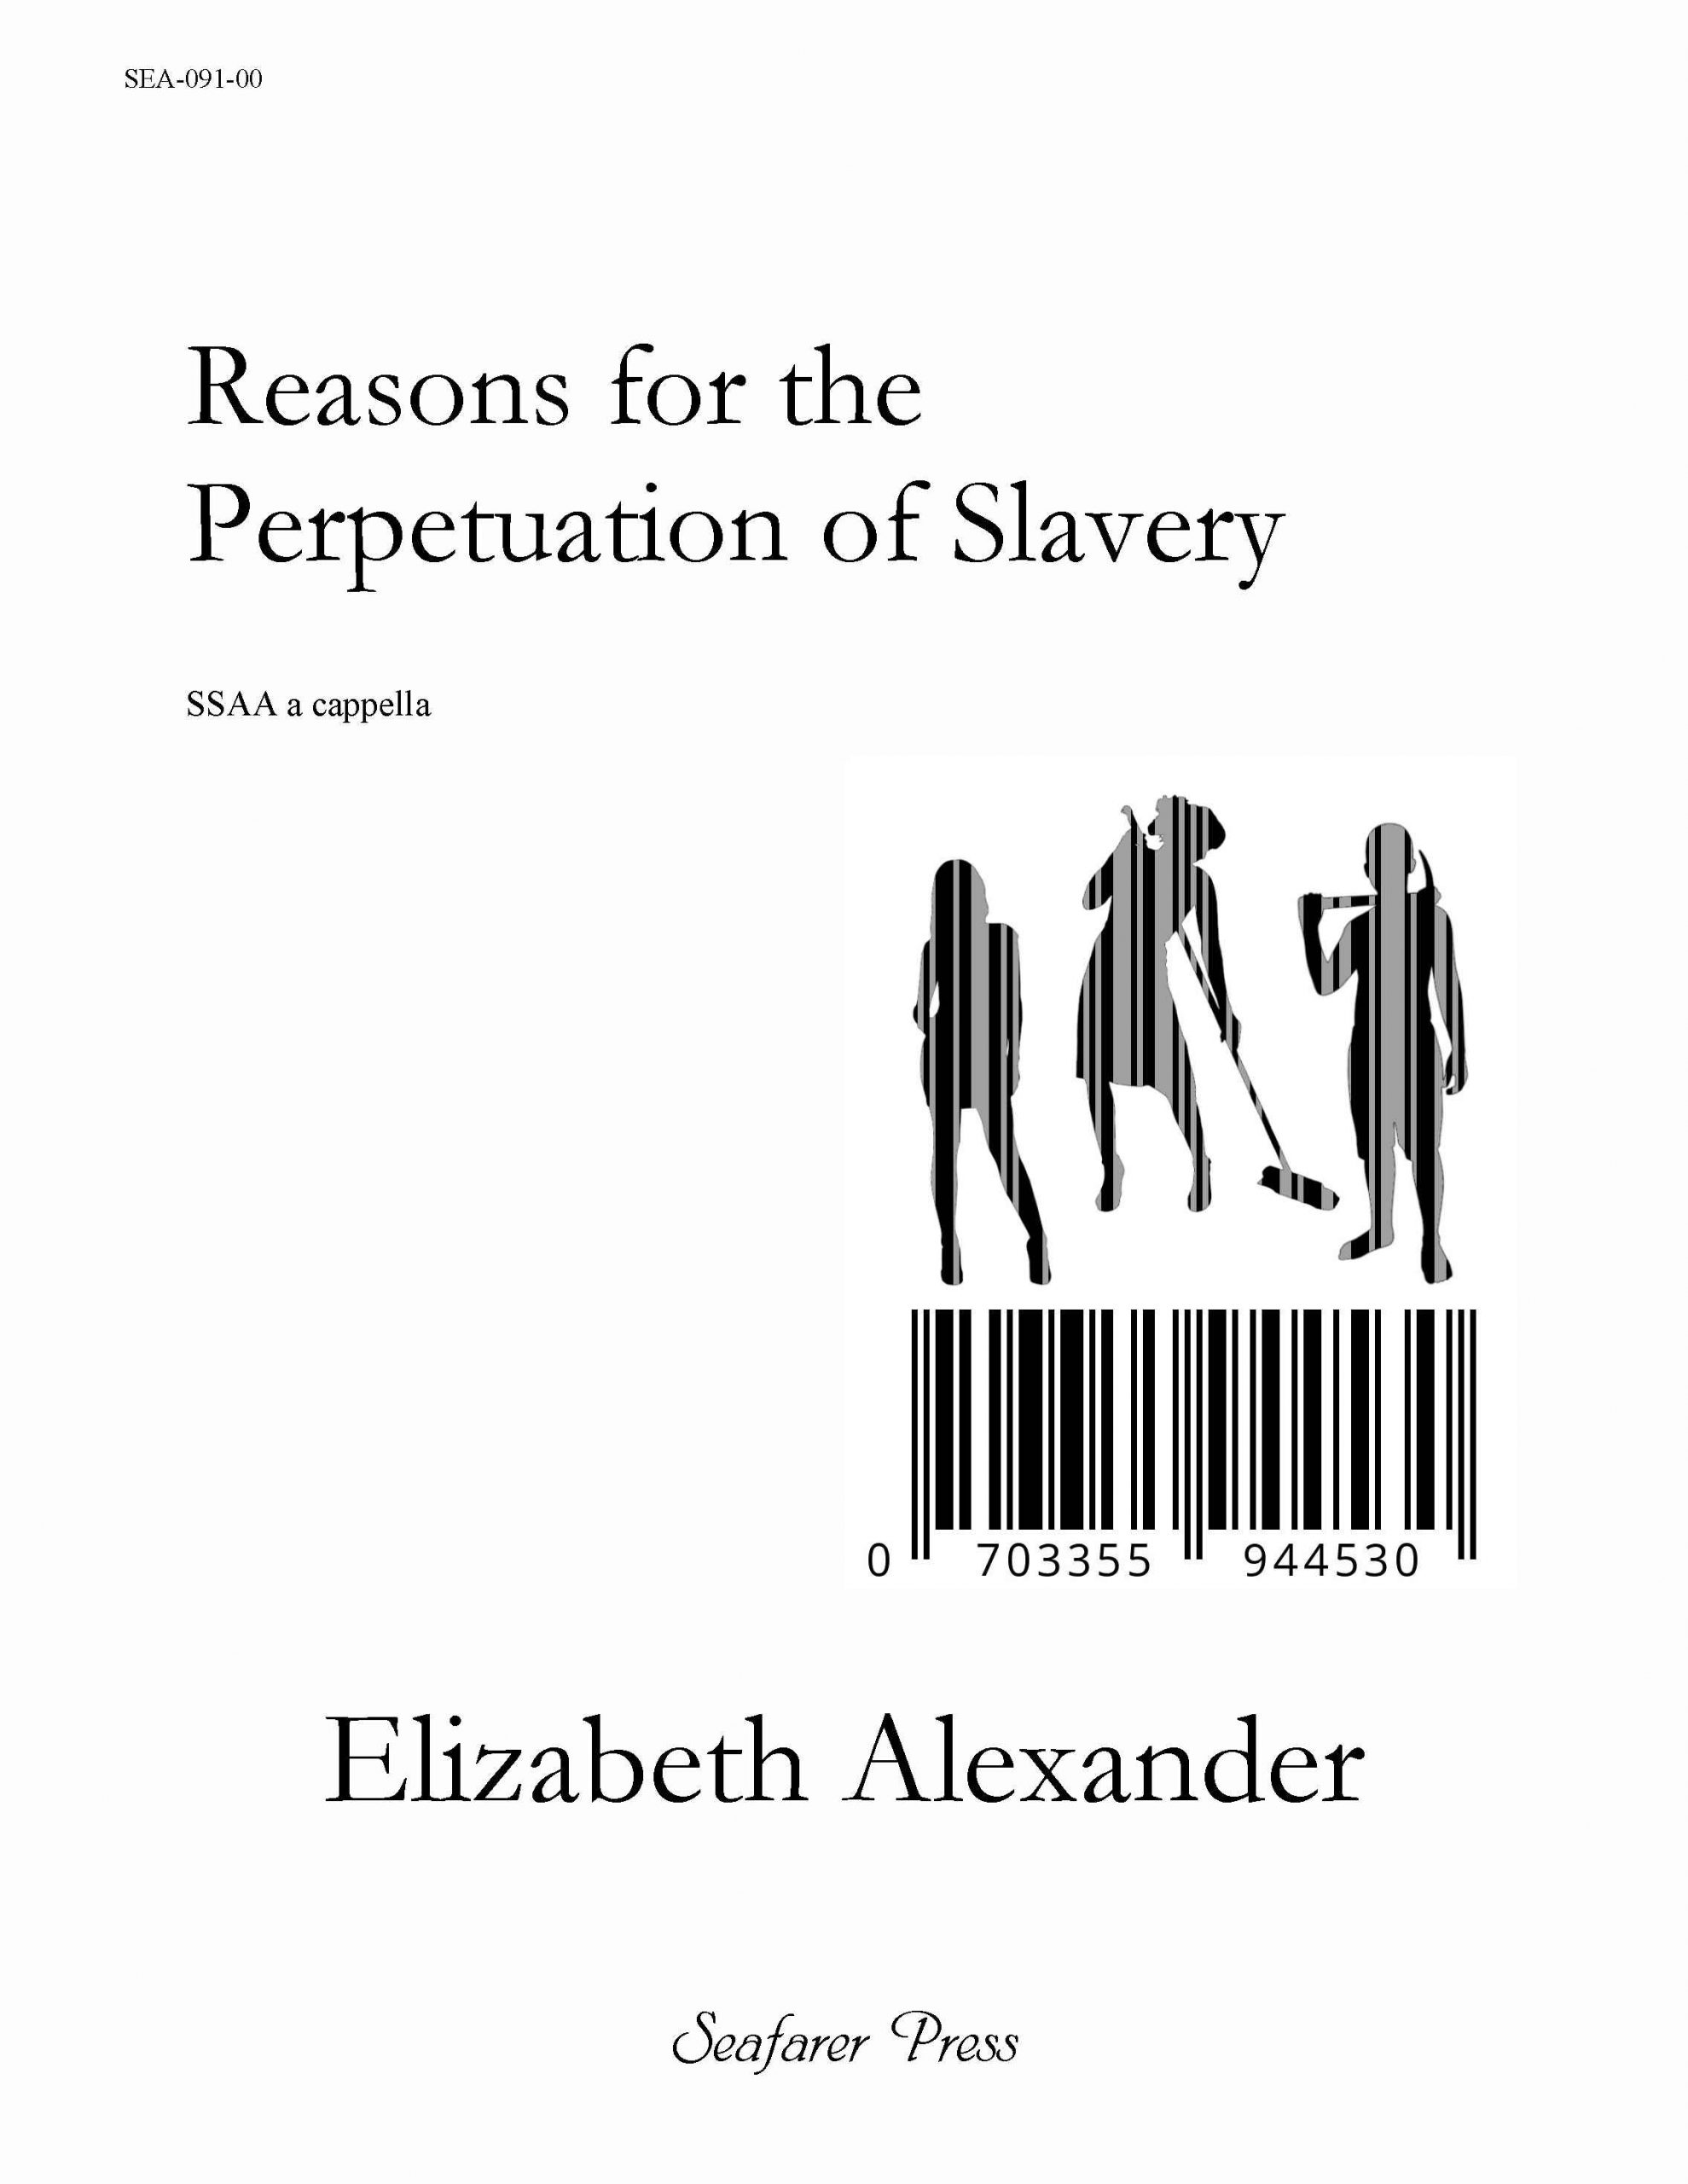 SEA-091-00 - Reasons for the Perpetuation of Slavery